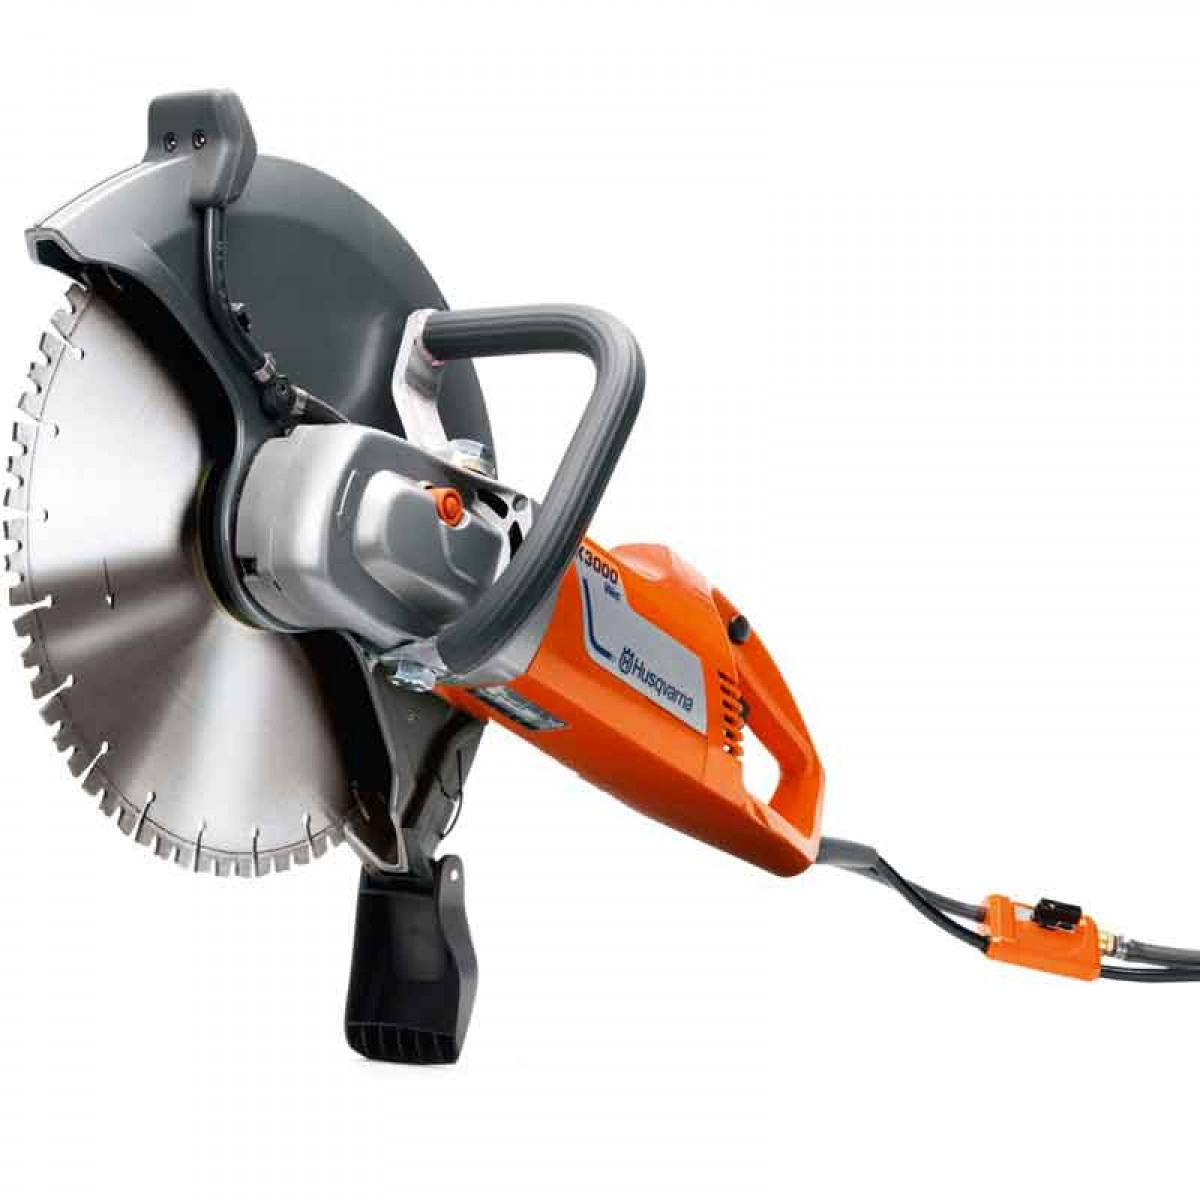 Electric Demo Saw <br> Minimum: $40 		24 Hours: $60 		Weekend: $90 <br> (add 10% damage Waiver Fee)